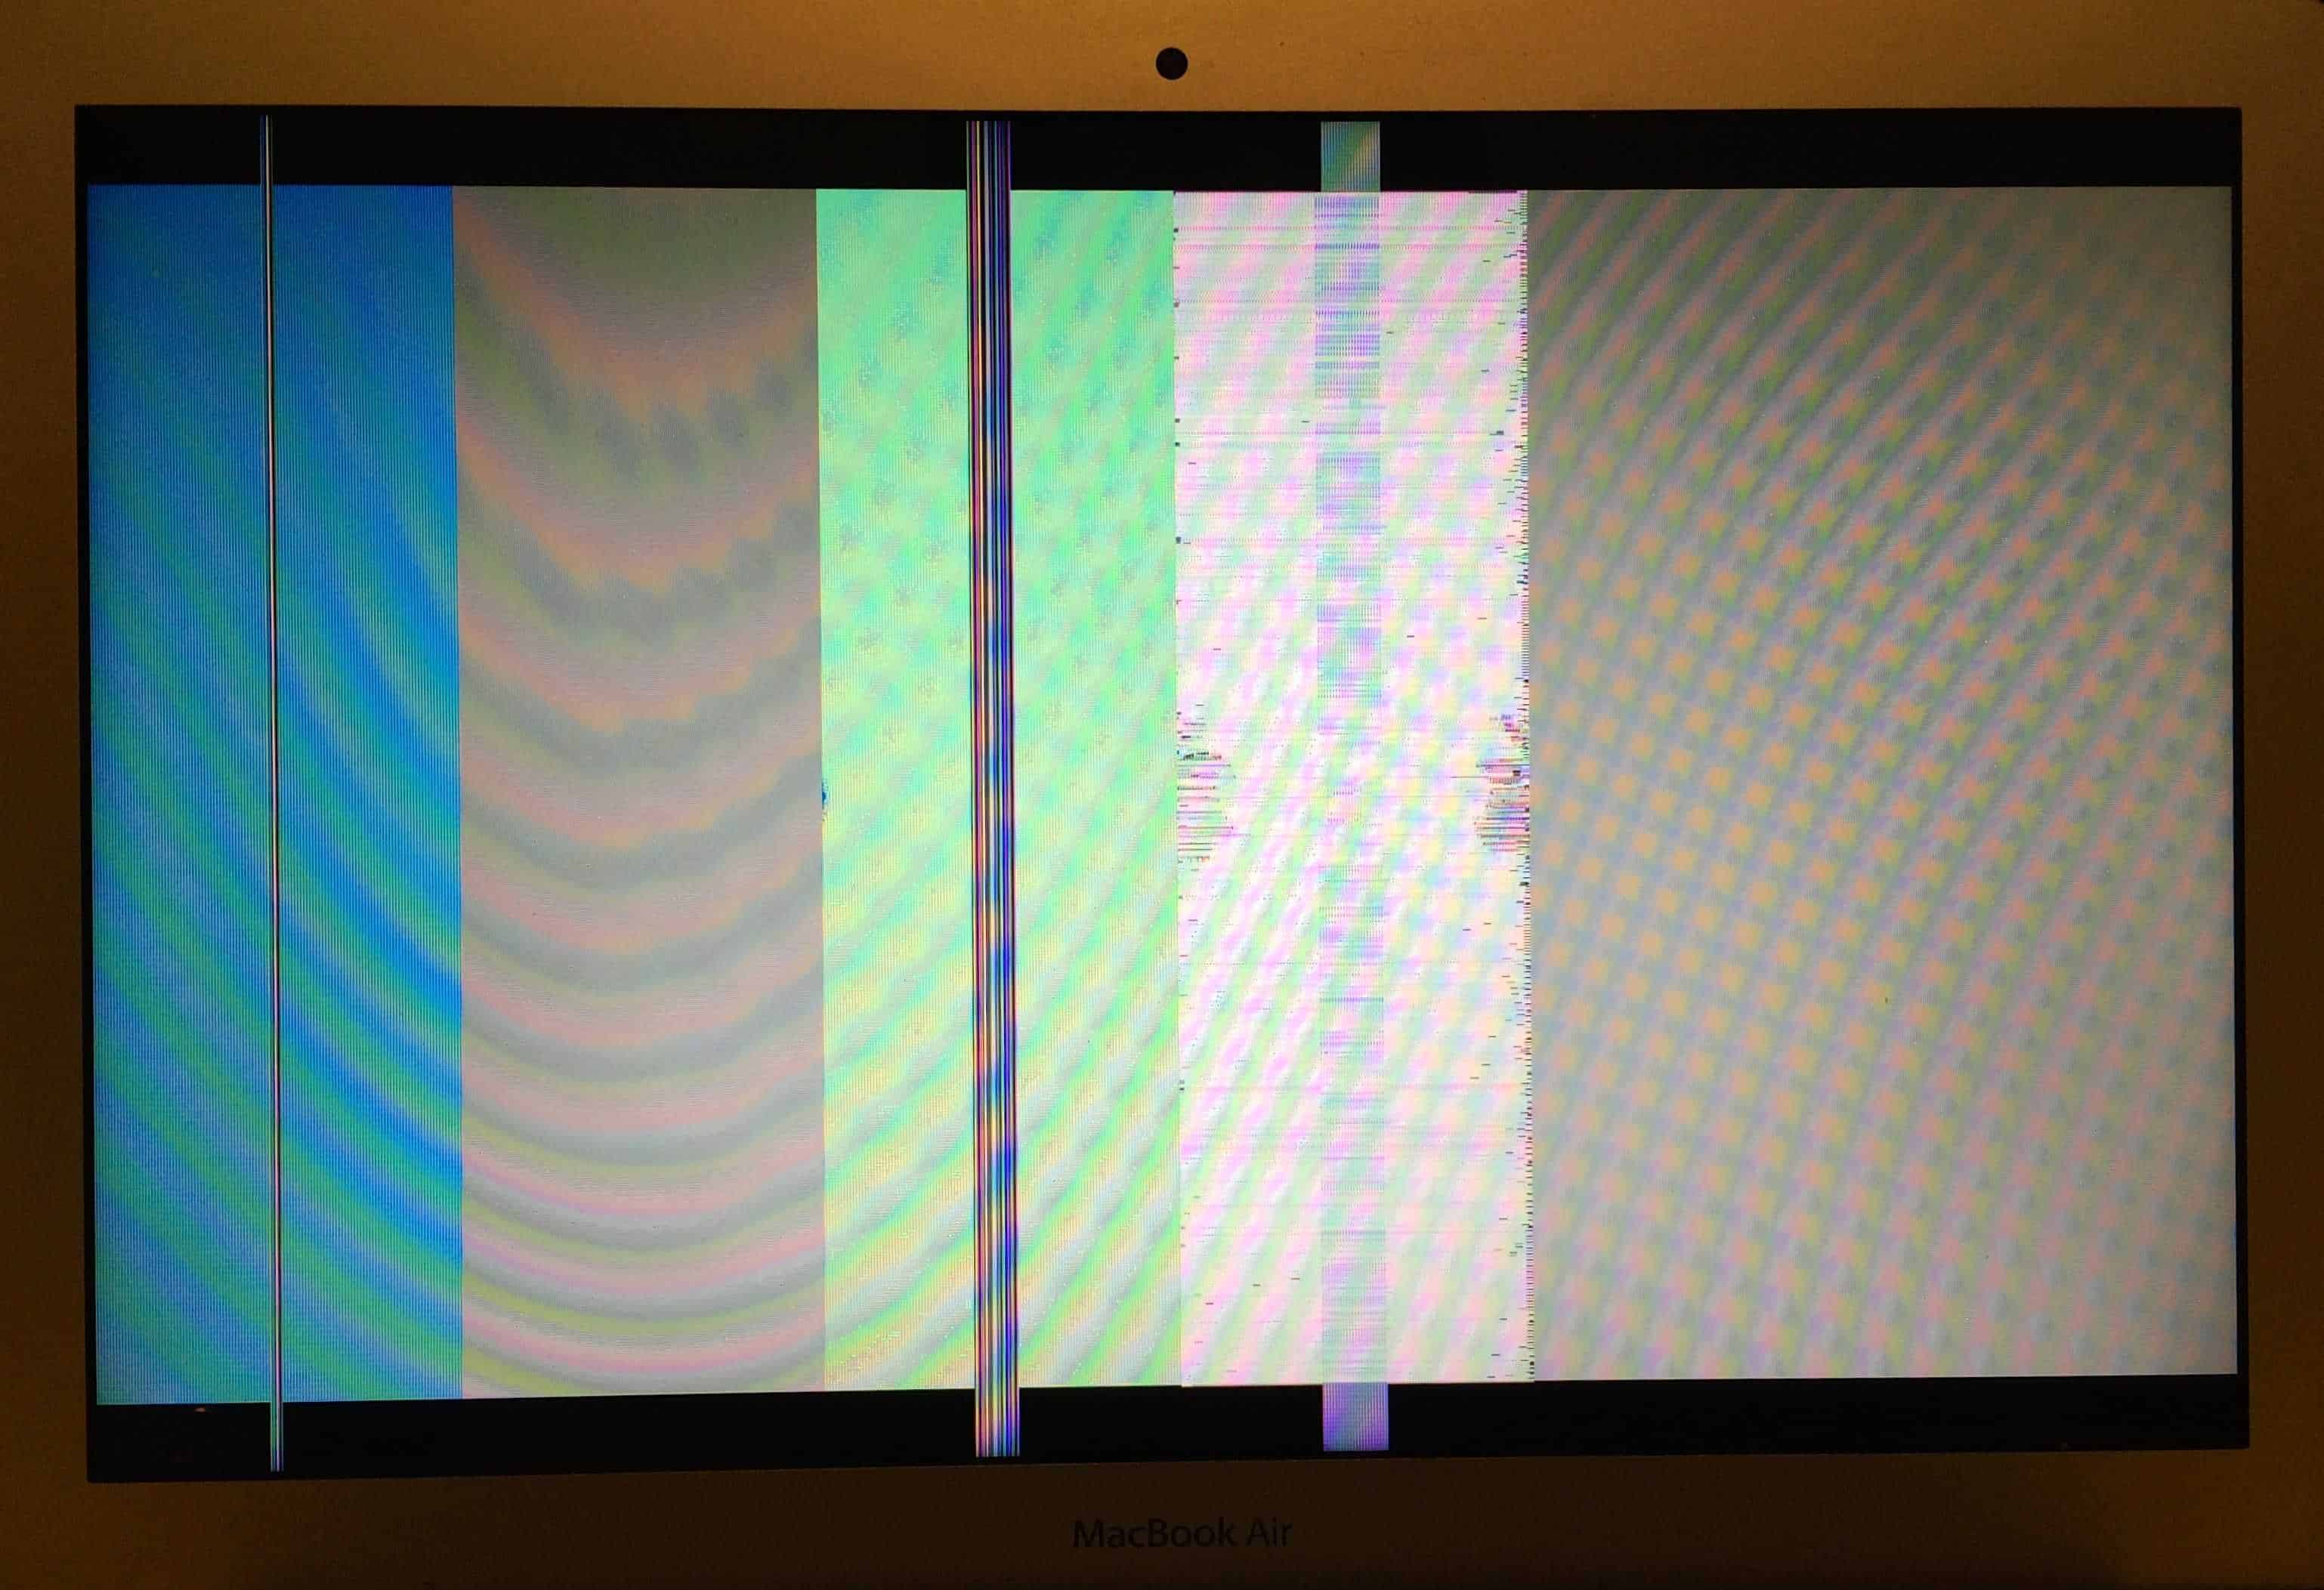 Vertical Lines Problem In Screen Mac Book Pro Early 2011